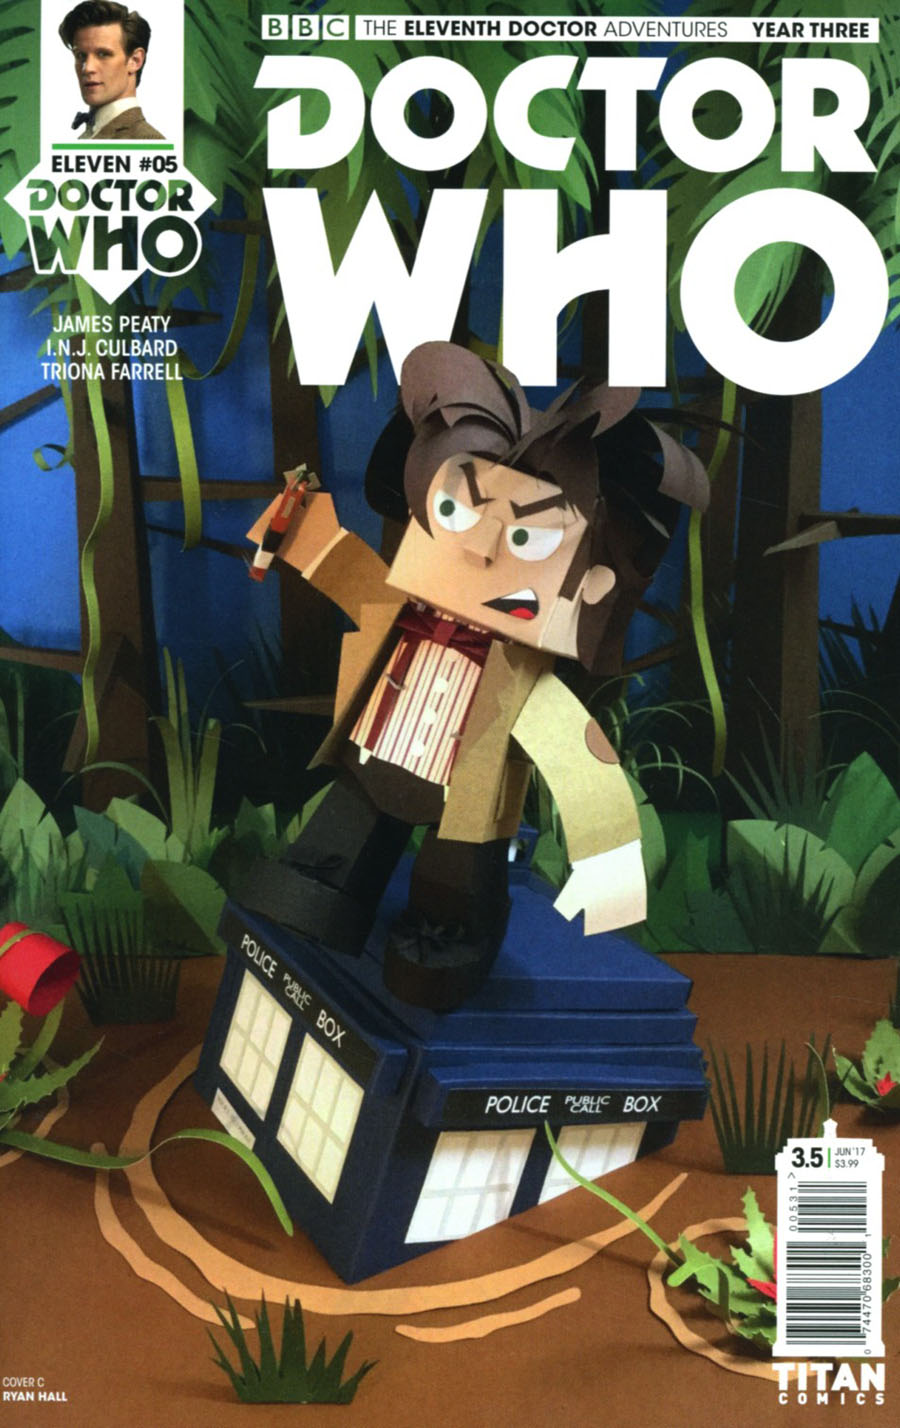 Doctor Who 11th Doctor Year Three #5 Cover C Variant Papercraft Cover